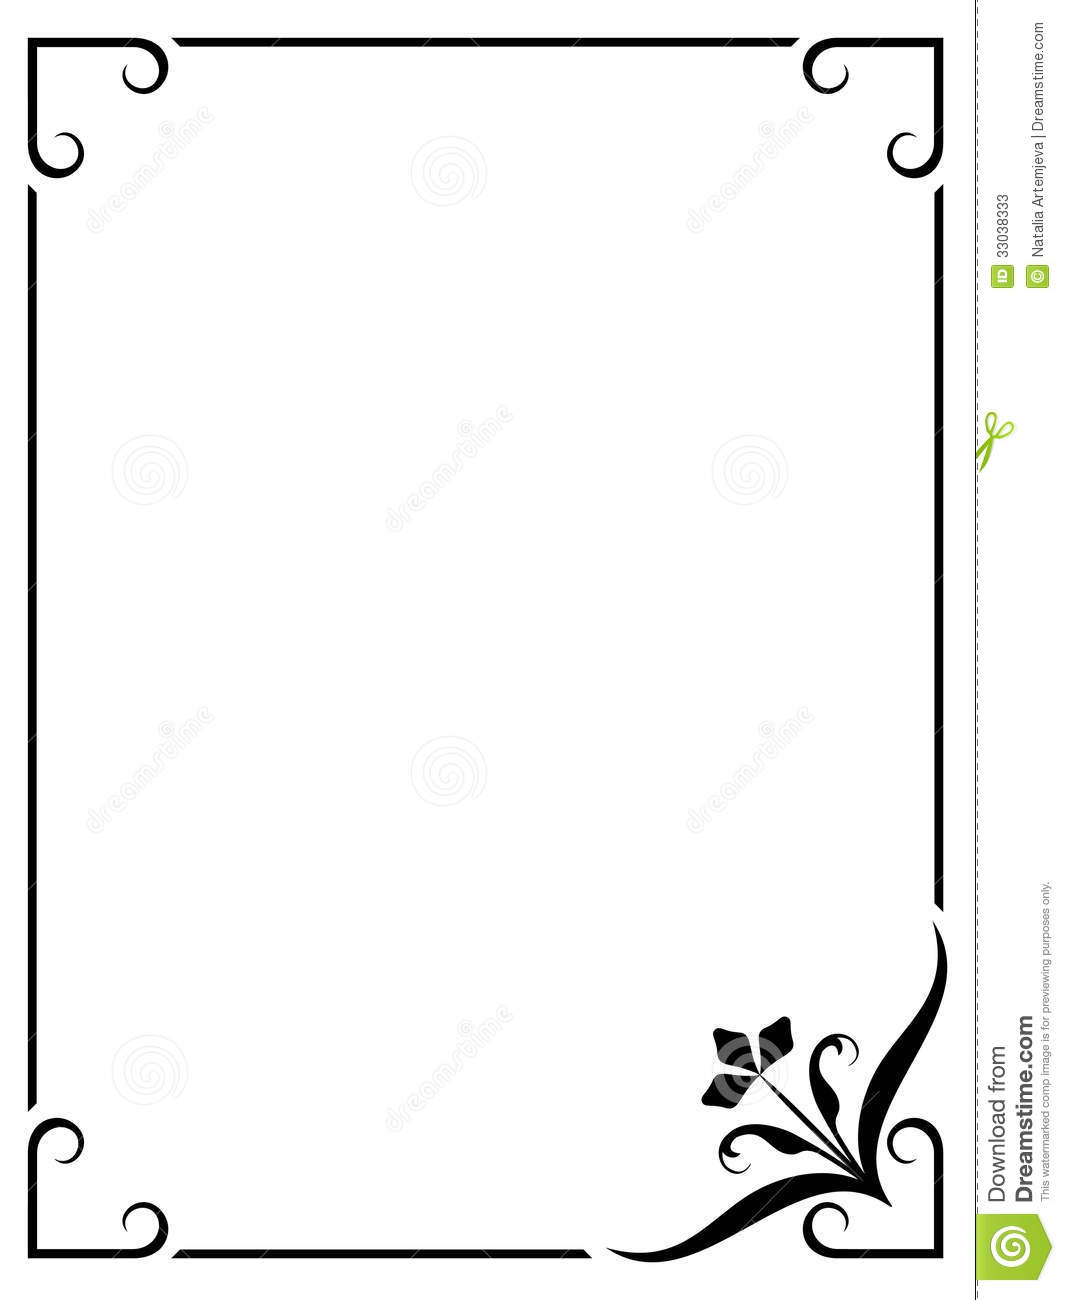 Simple frame stock vector. Illustration of background - 33038333